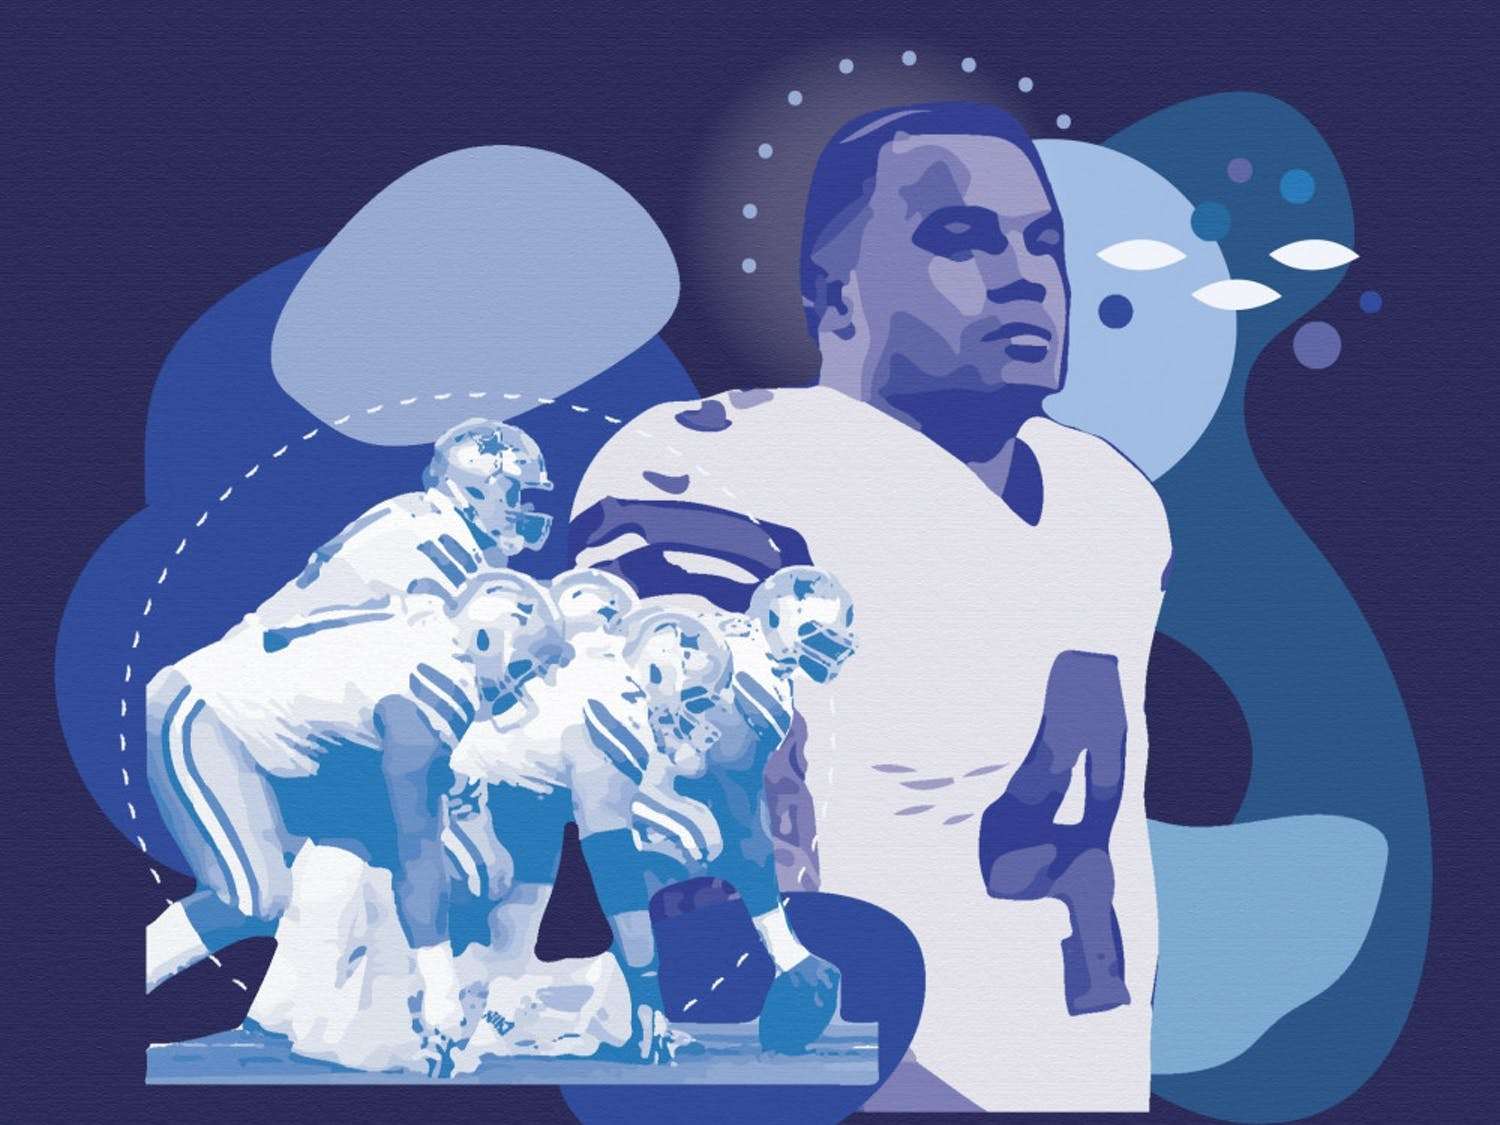 Dak Prescott, the quarterback for the Dallas Cowboys, recently opened up to the public about his struggle with mental health.